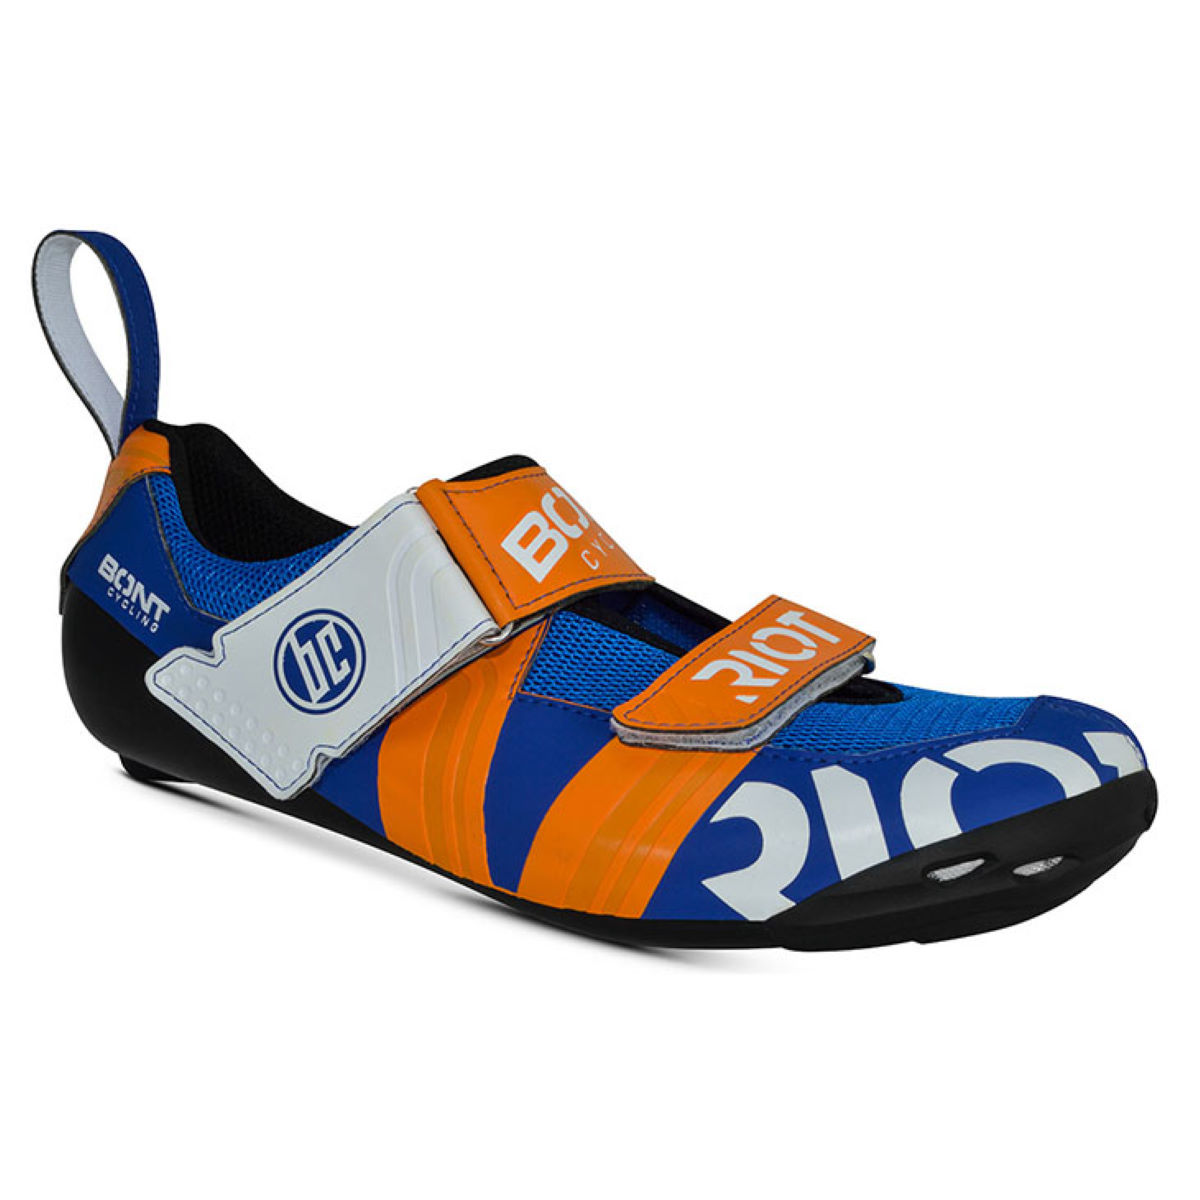 Chaussures de triathlon Bont Riot TR+ - EU 44 Midnight/Mega Crimso